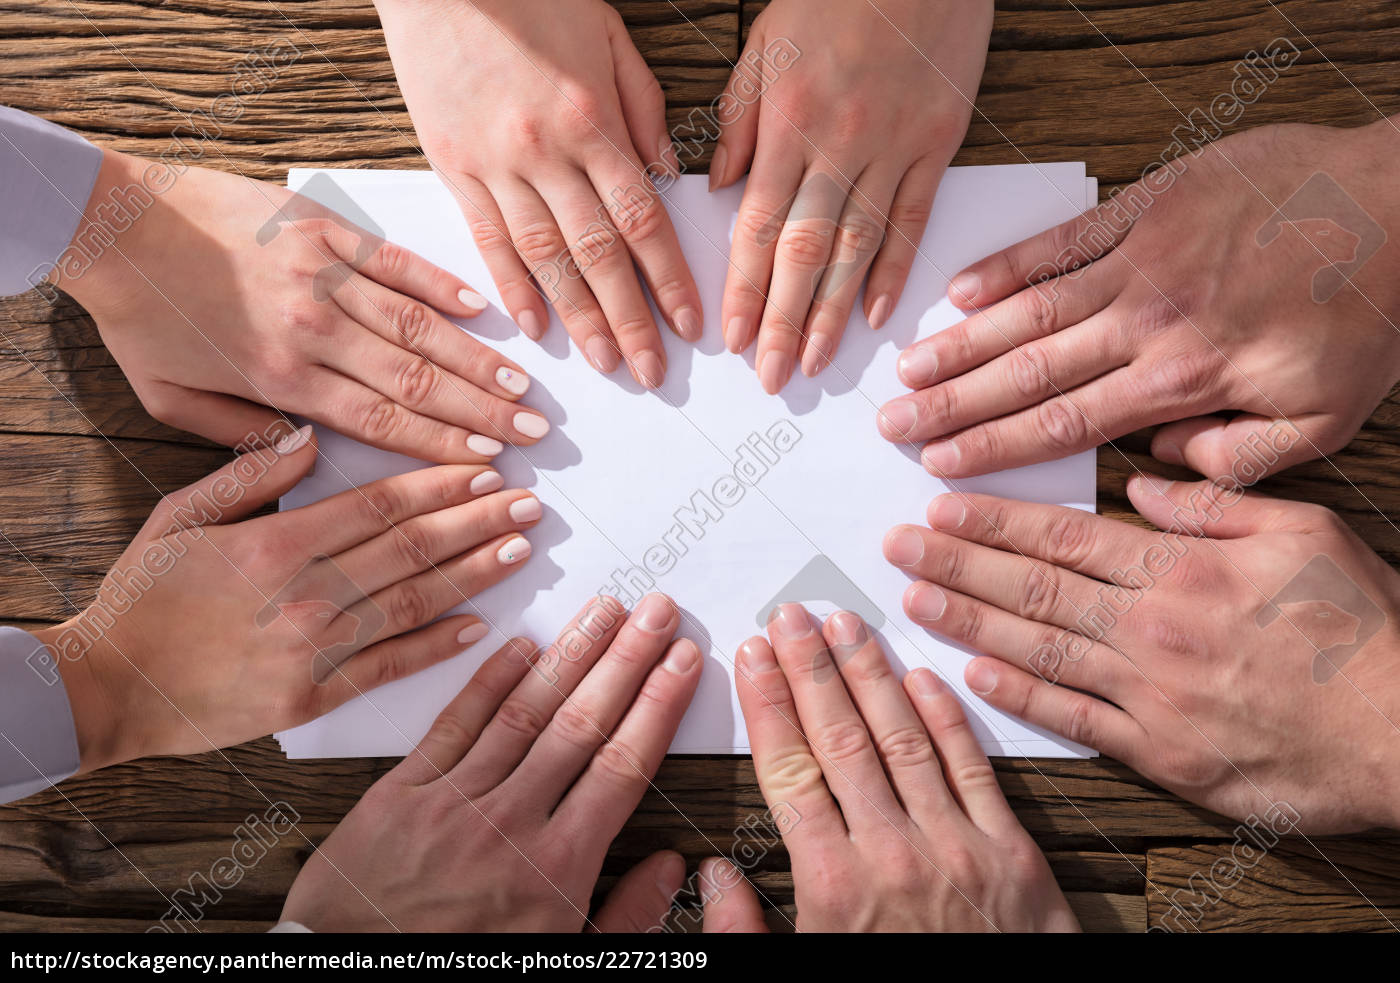 hands, touching, white, paper - 22721309